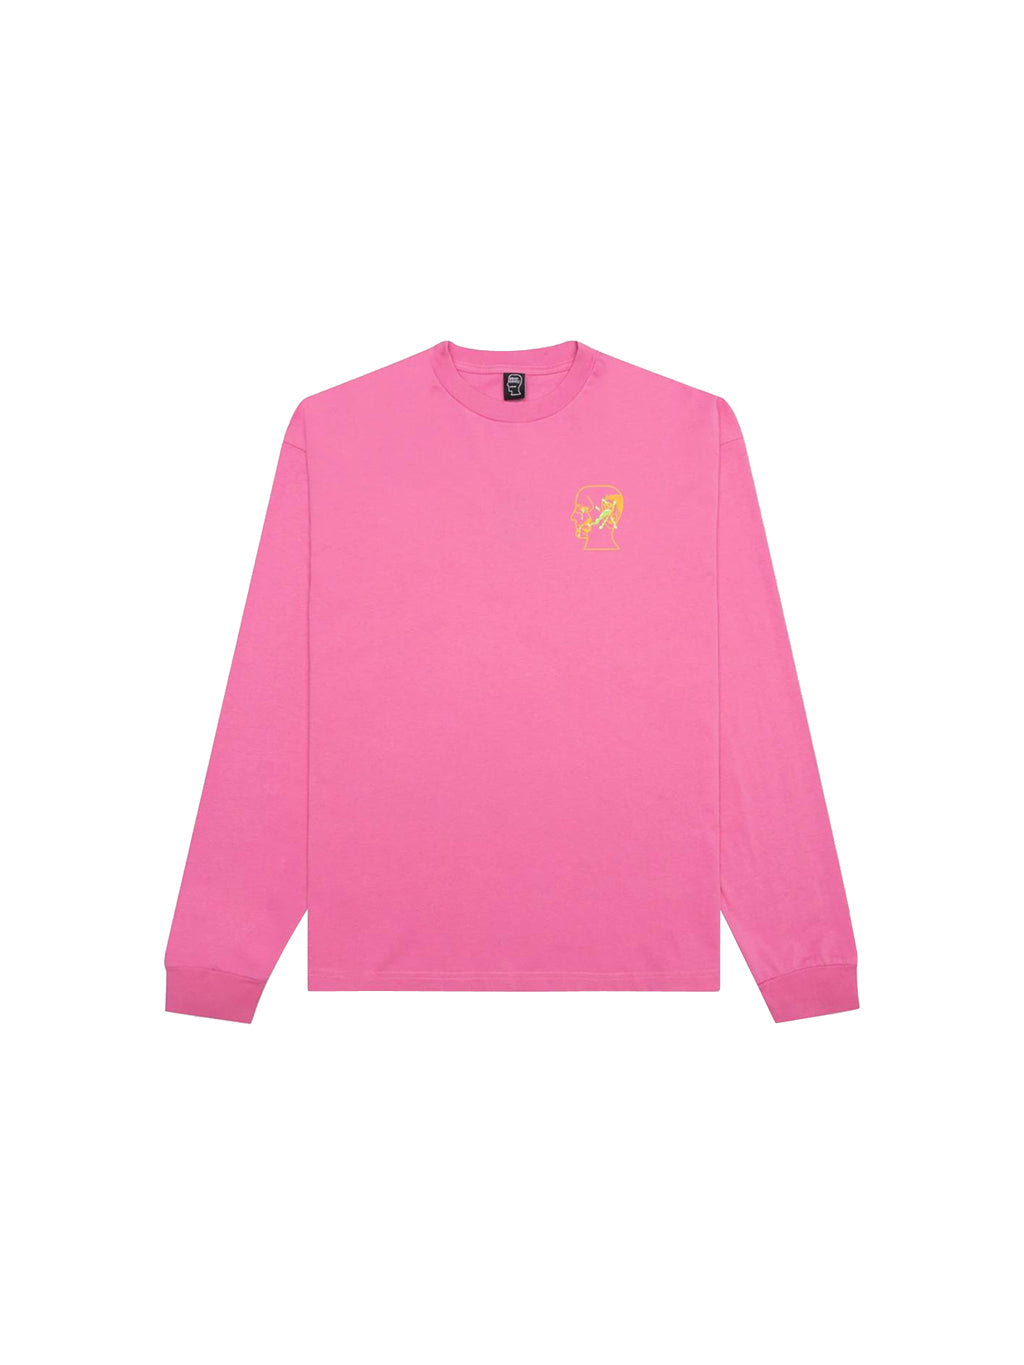 Washed Pink Goop Long Sleeve T-Shirt